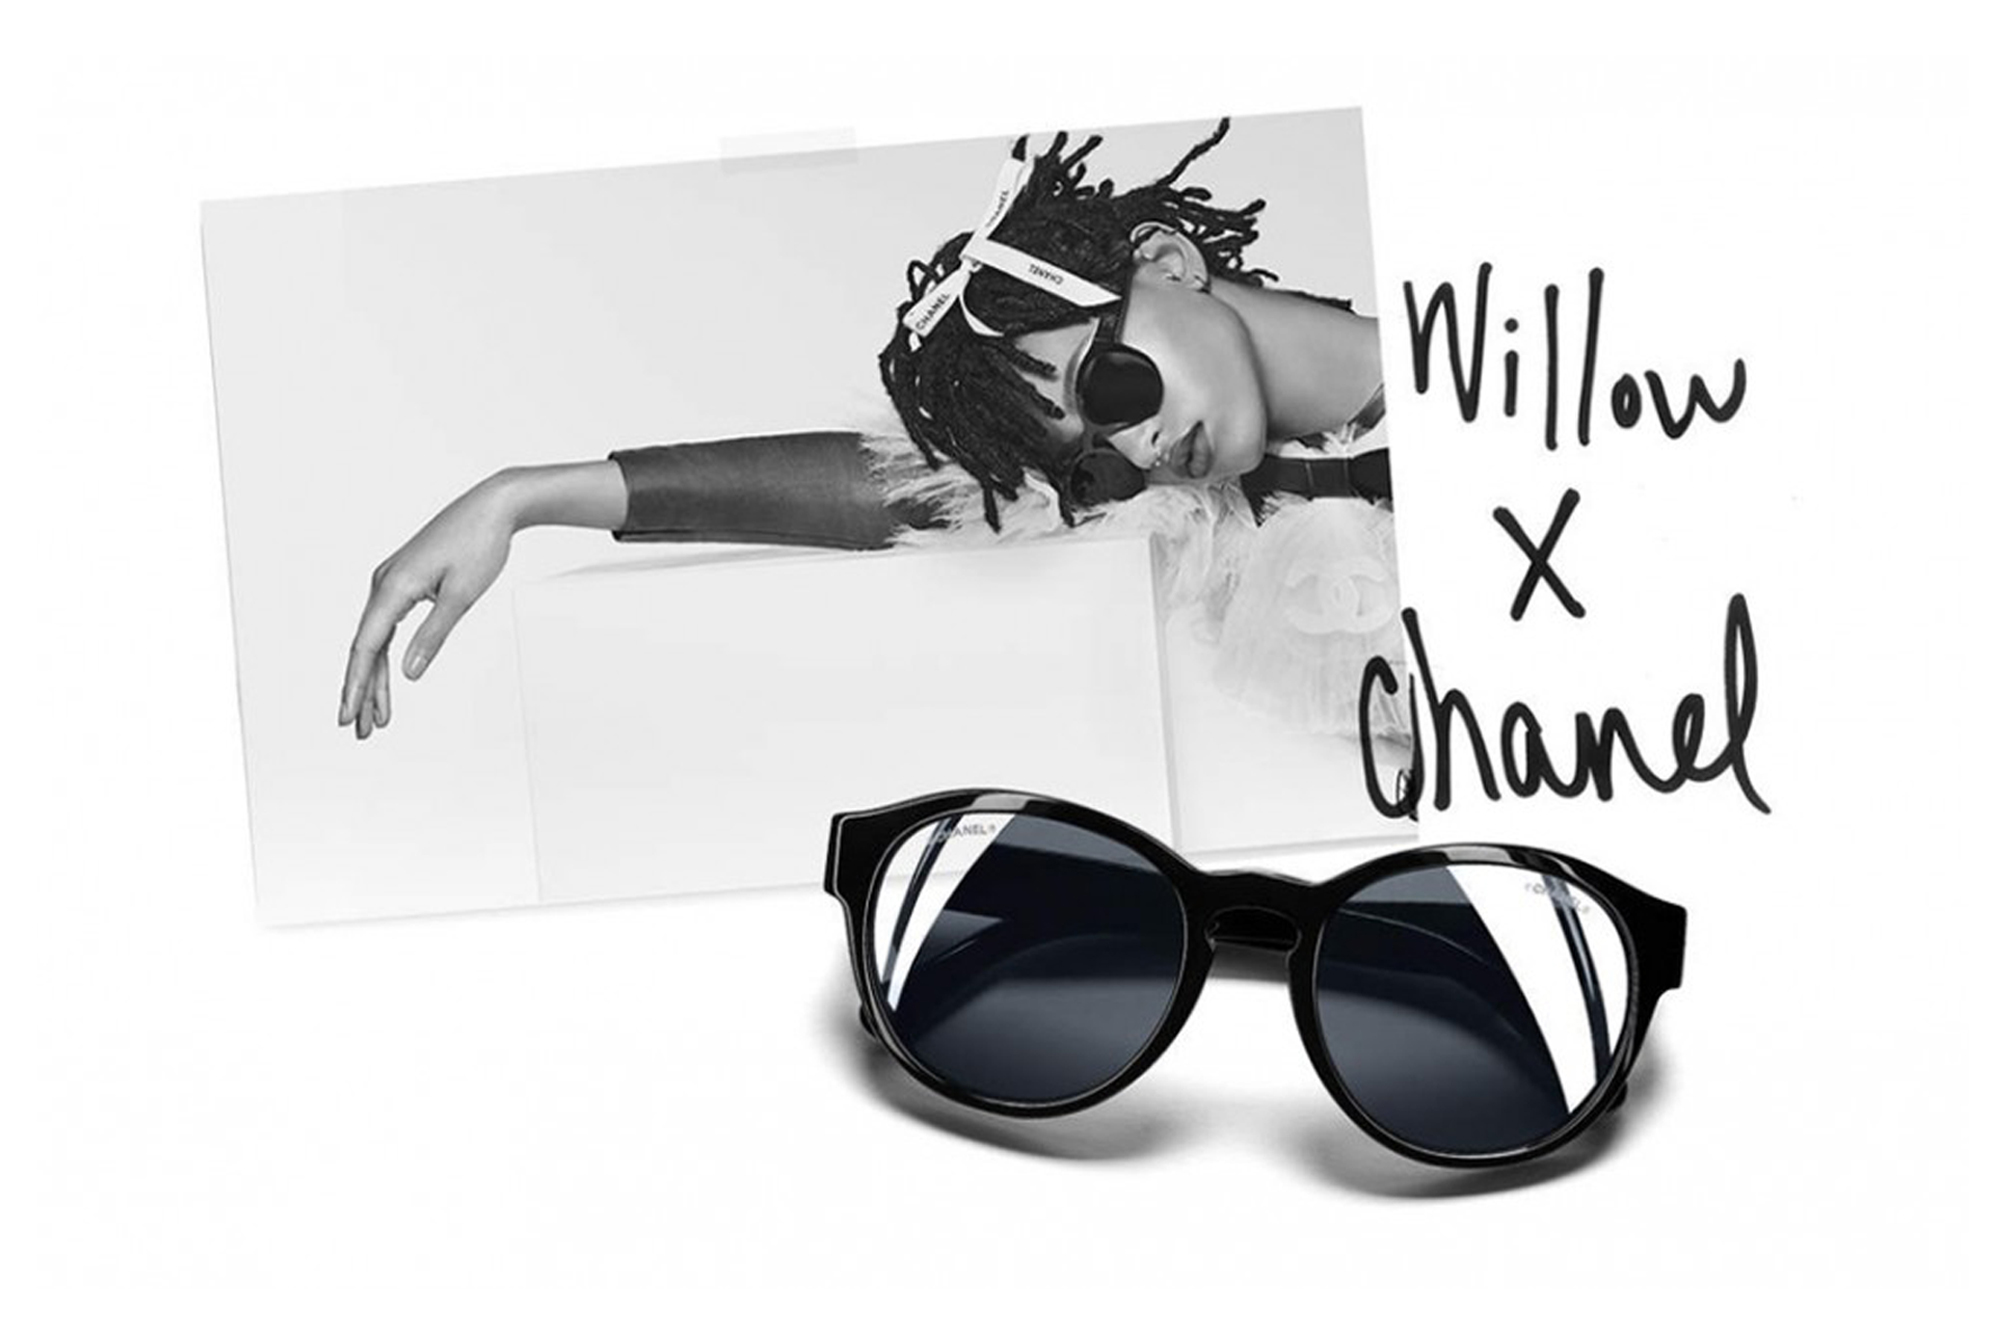 Willow X Chanel, La Campaña Eyewear De Chanel